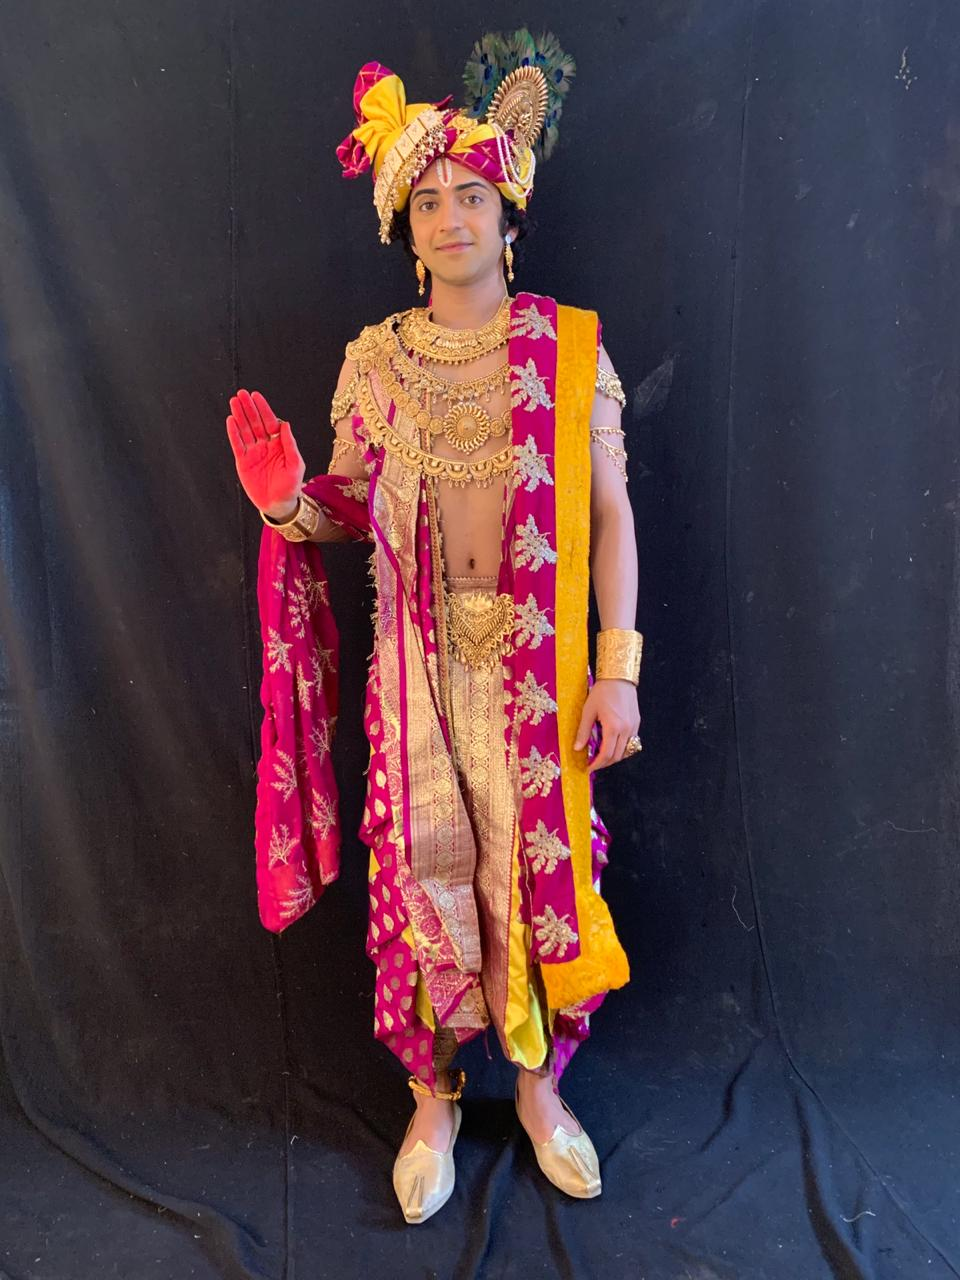 RadhaKrishn – Krishn Arjun Gatha: Sumedh Mudgalkar in new Krishn look is divine 1